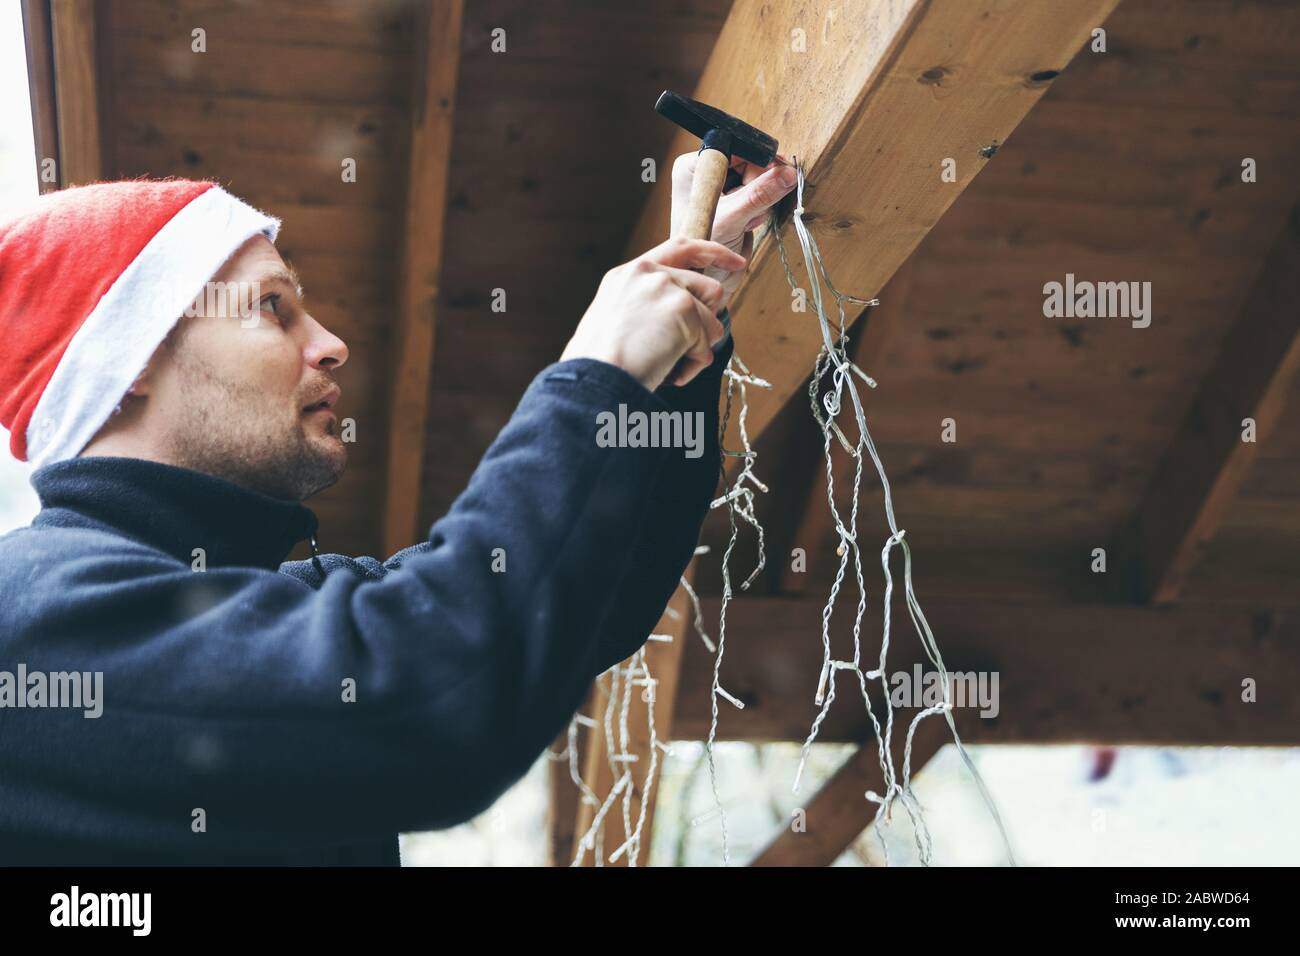 Man With Santa Hat Decorating House Outdoor Carport Installing Christmas Lights Stock Photo Alamy